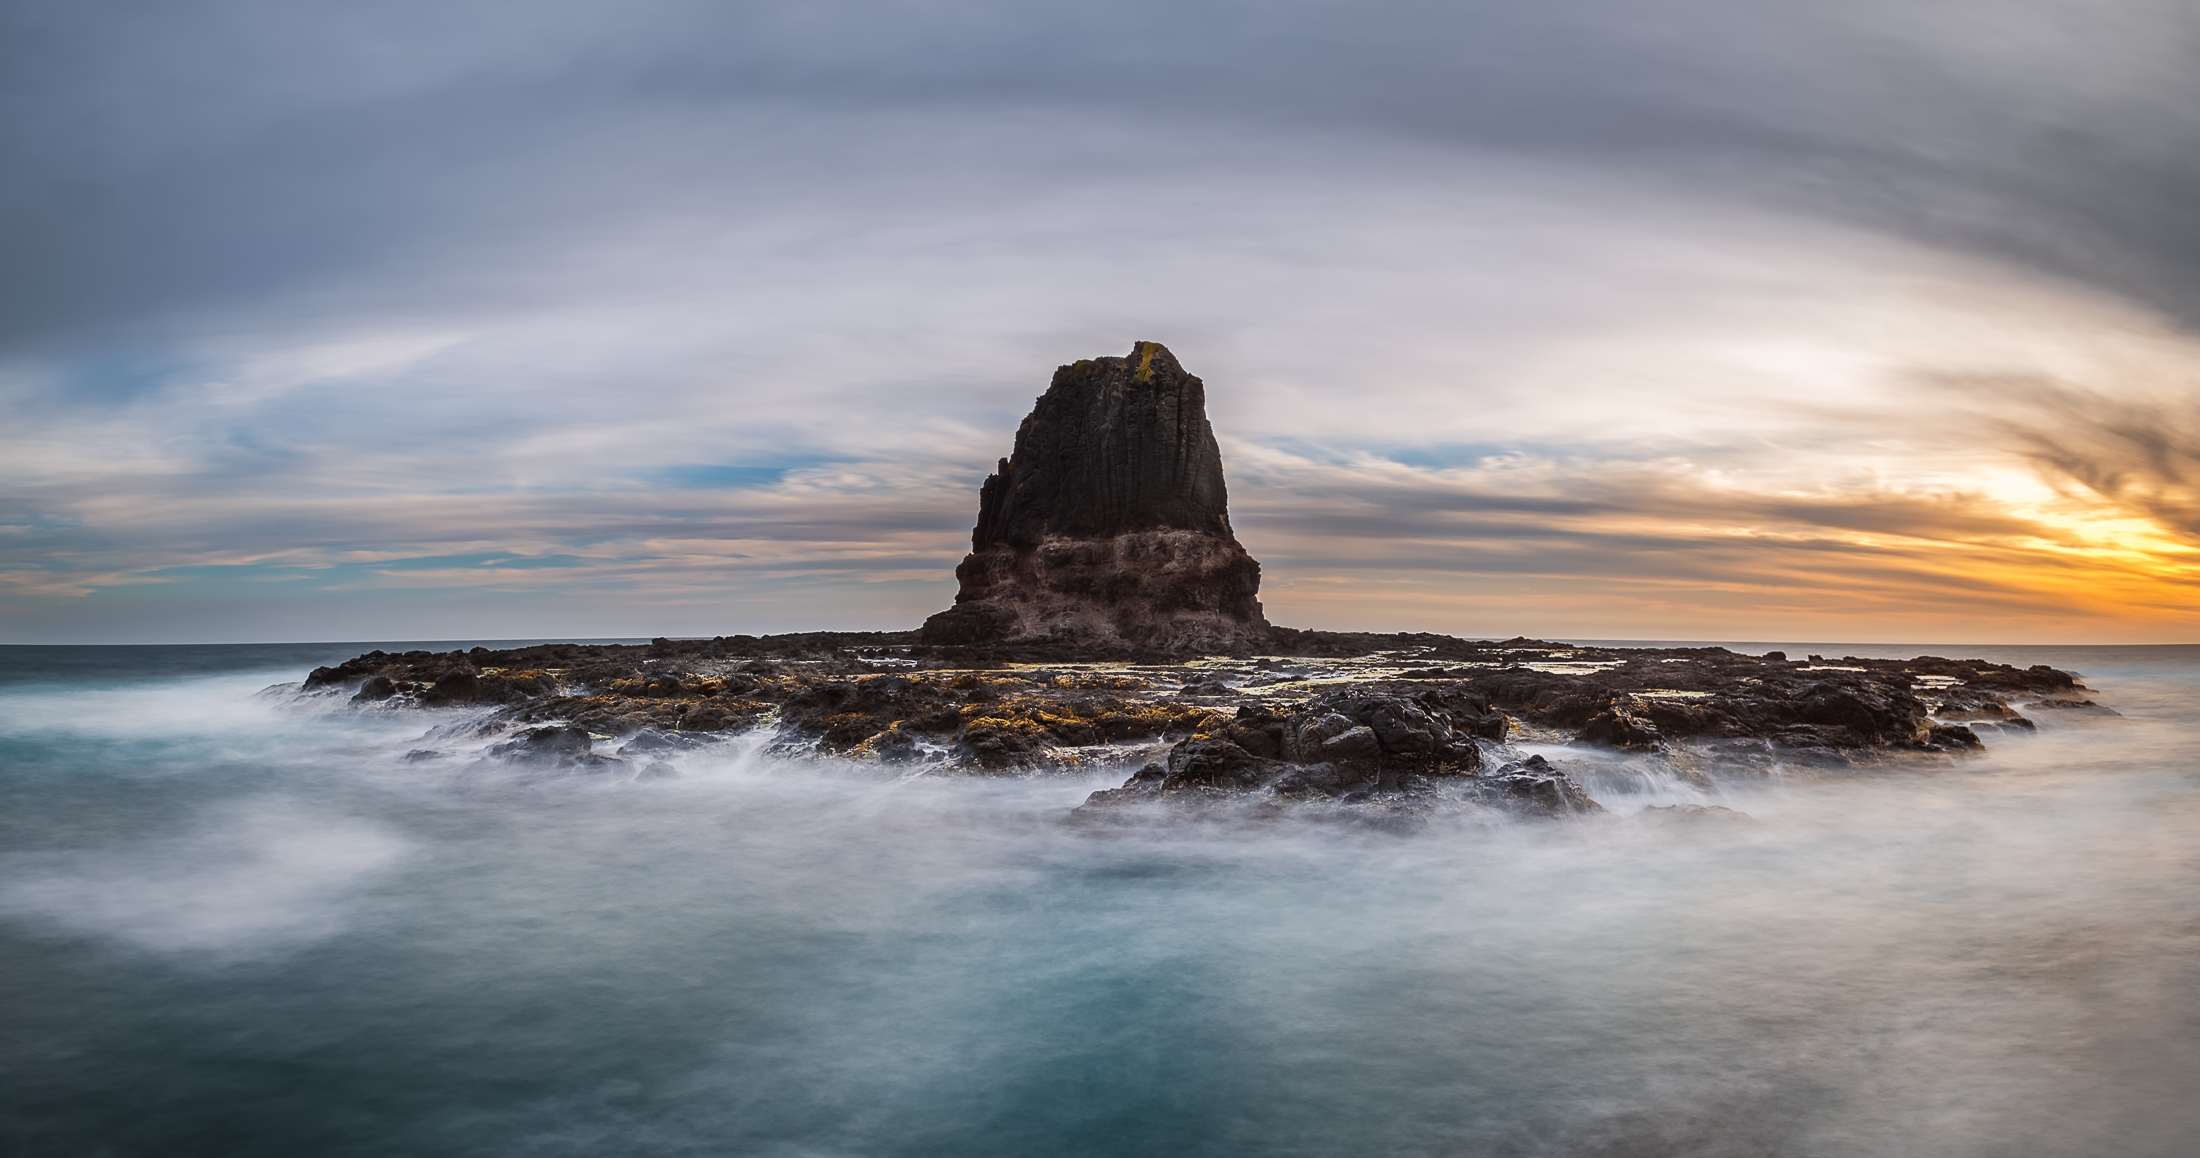 A sunset panorama of Pulpit Rock at Cape Schanck, Victoria, Australia - Photo by Paul Tadday